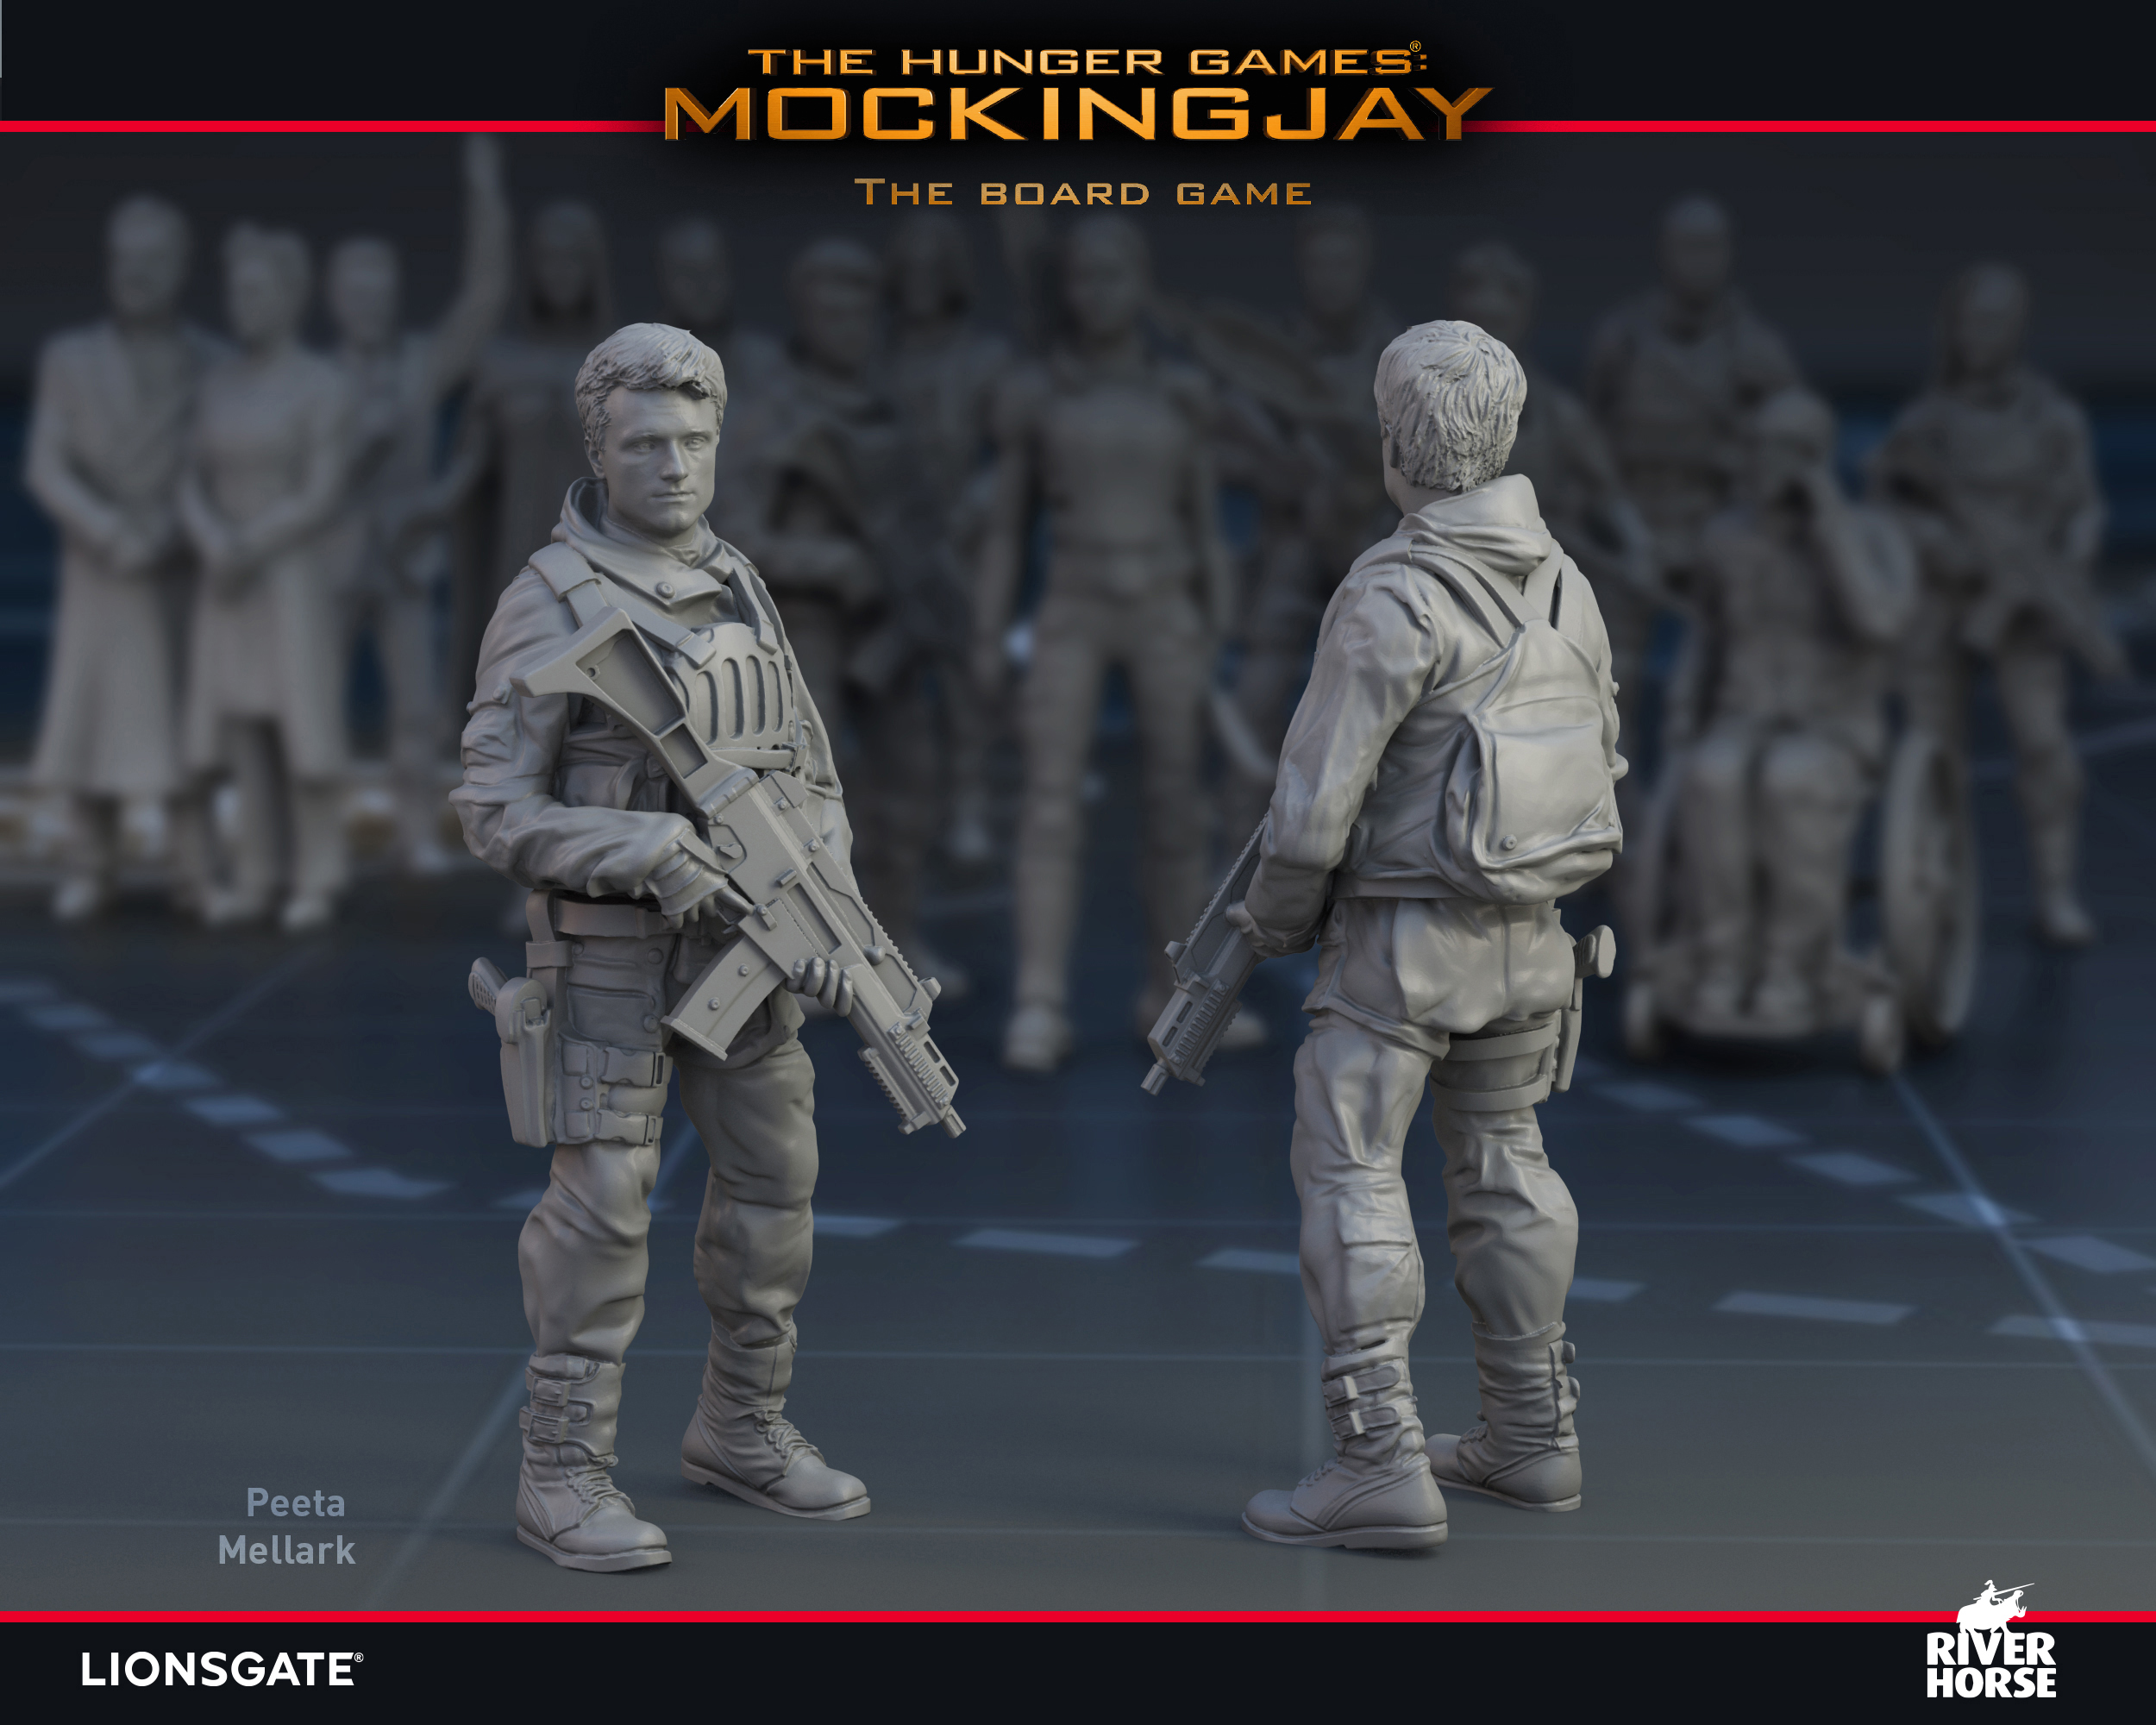 Render of Peeta Mellark for The Hunger Games: Mockingjay - The Board Game by River Horse